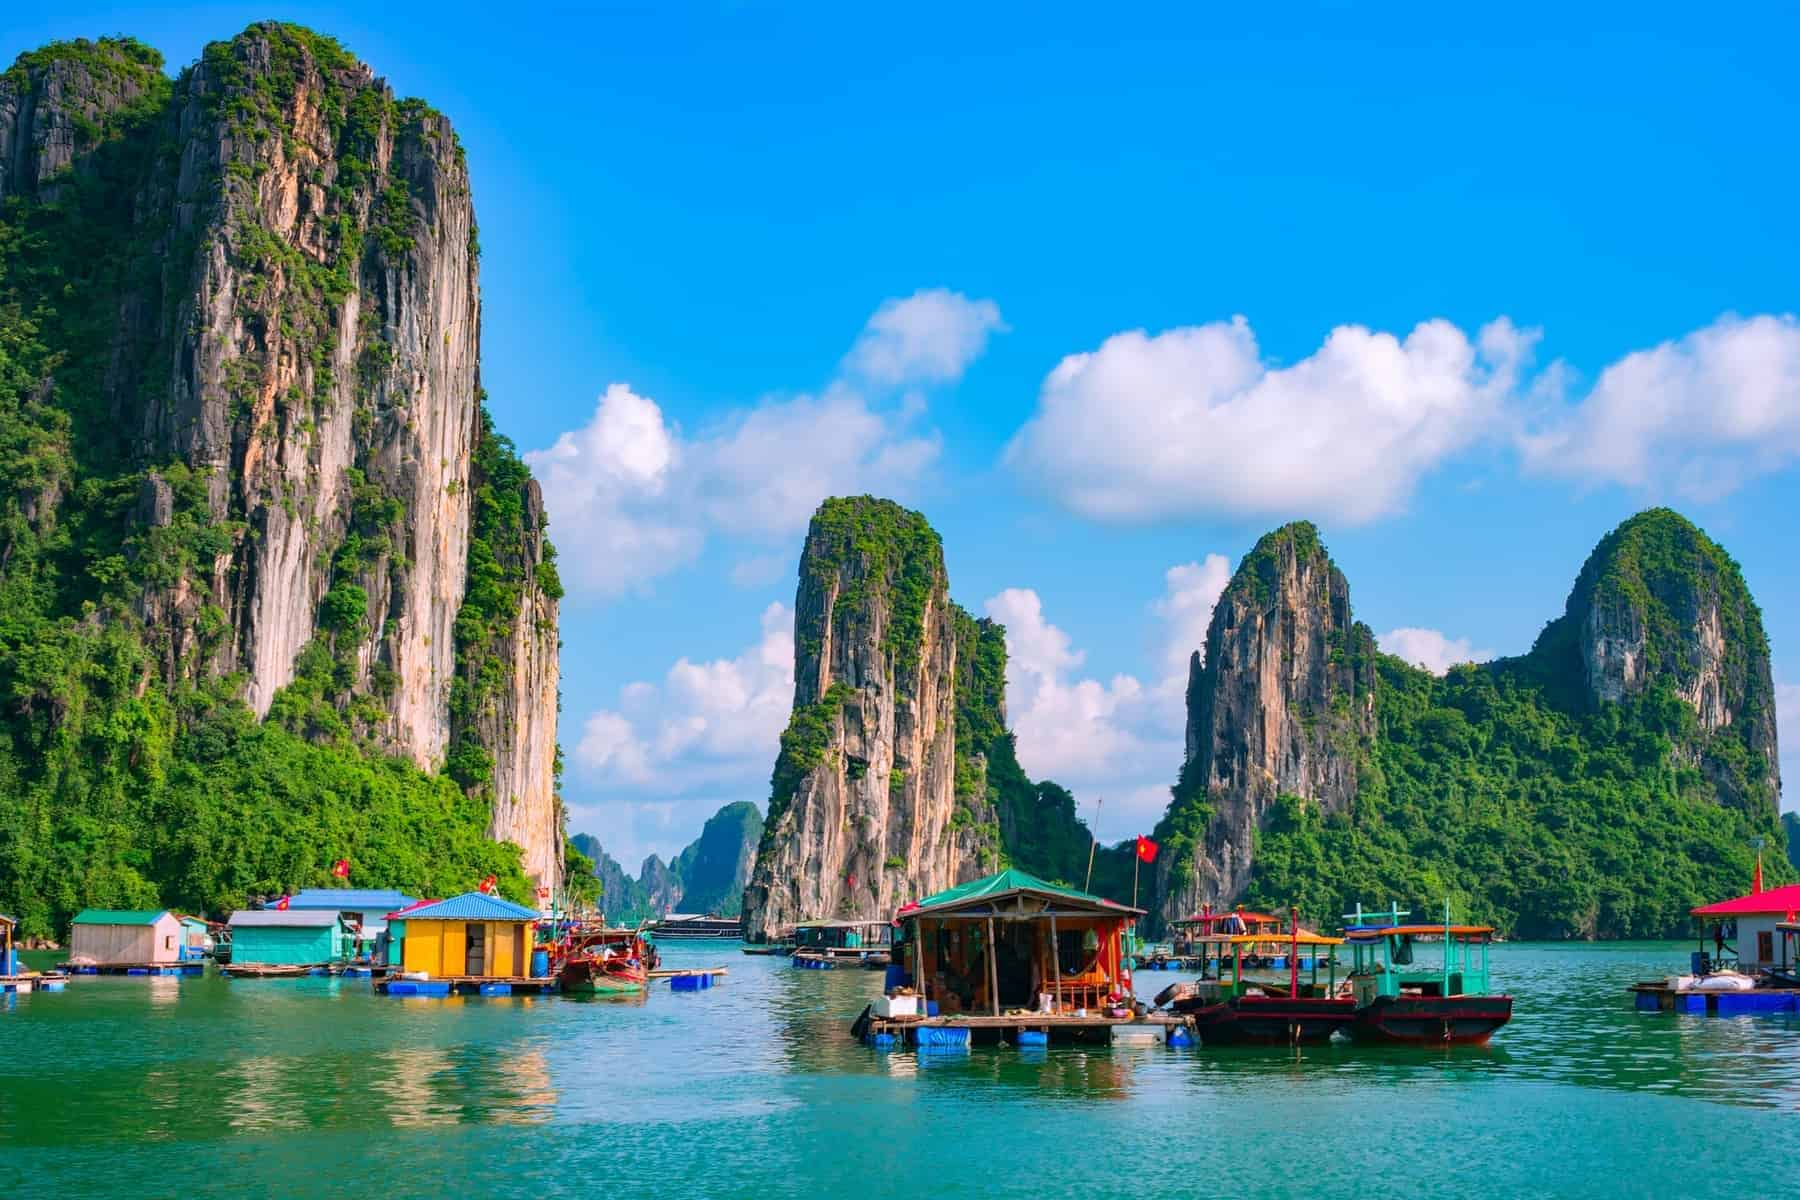 Topas Travel i Vietnam. Floating fishing village and rock island in Halong Bay, Vietnam, Southeast Asia. UNESCO World Heritage Site. Junk boat cruise to Ha Long Bay. Landscape. Popular landmark, famous destination of Vietnam